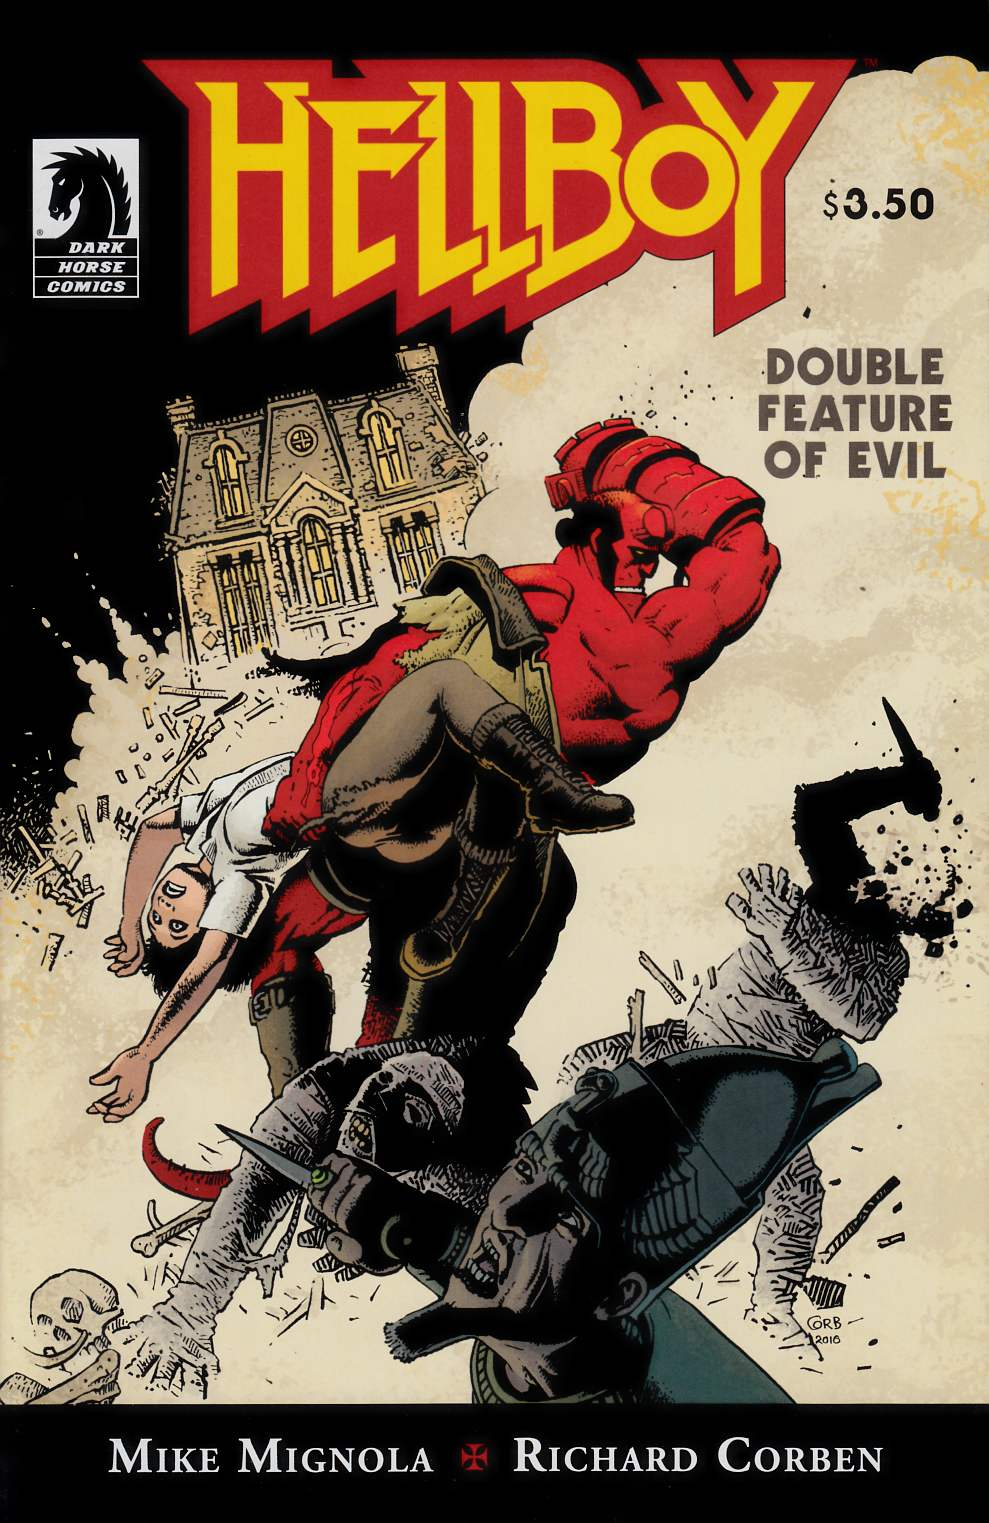 Hellboy Double Feature of Evil (One Shot) Near Mint (9.4) [Dark Horse Comic] THUMBNAIL